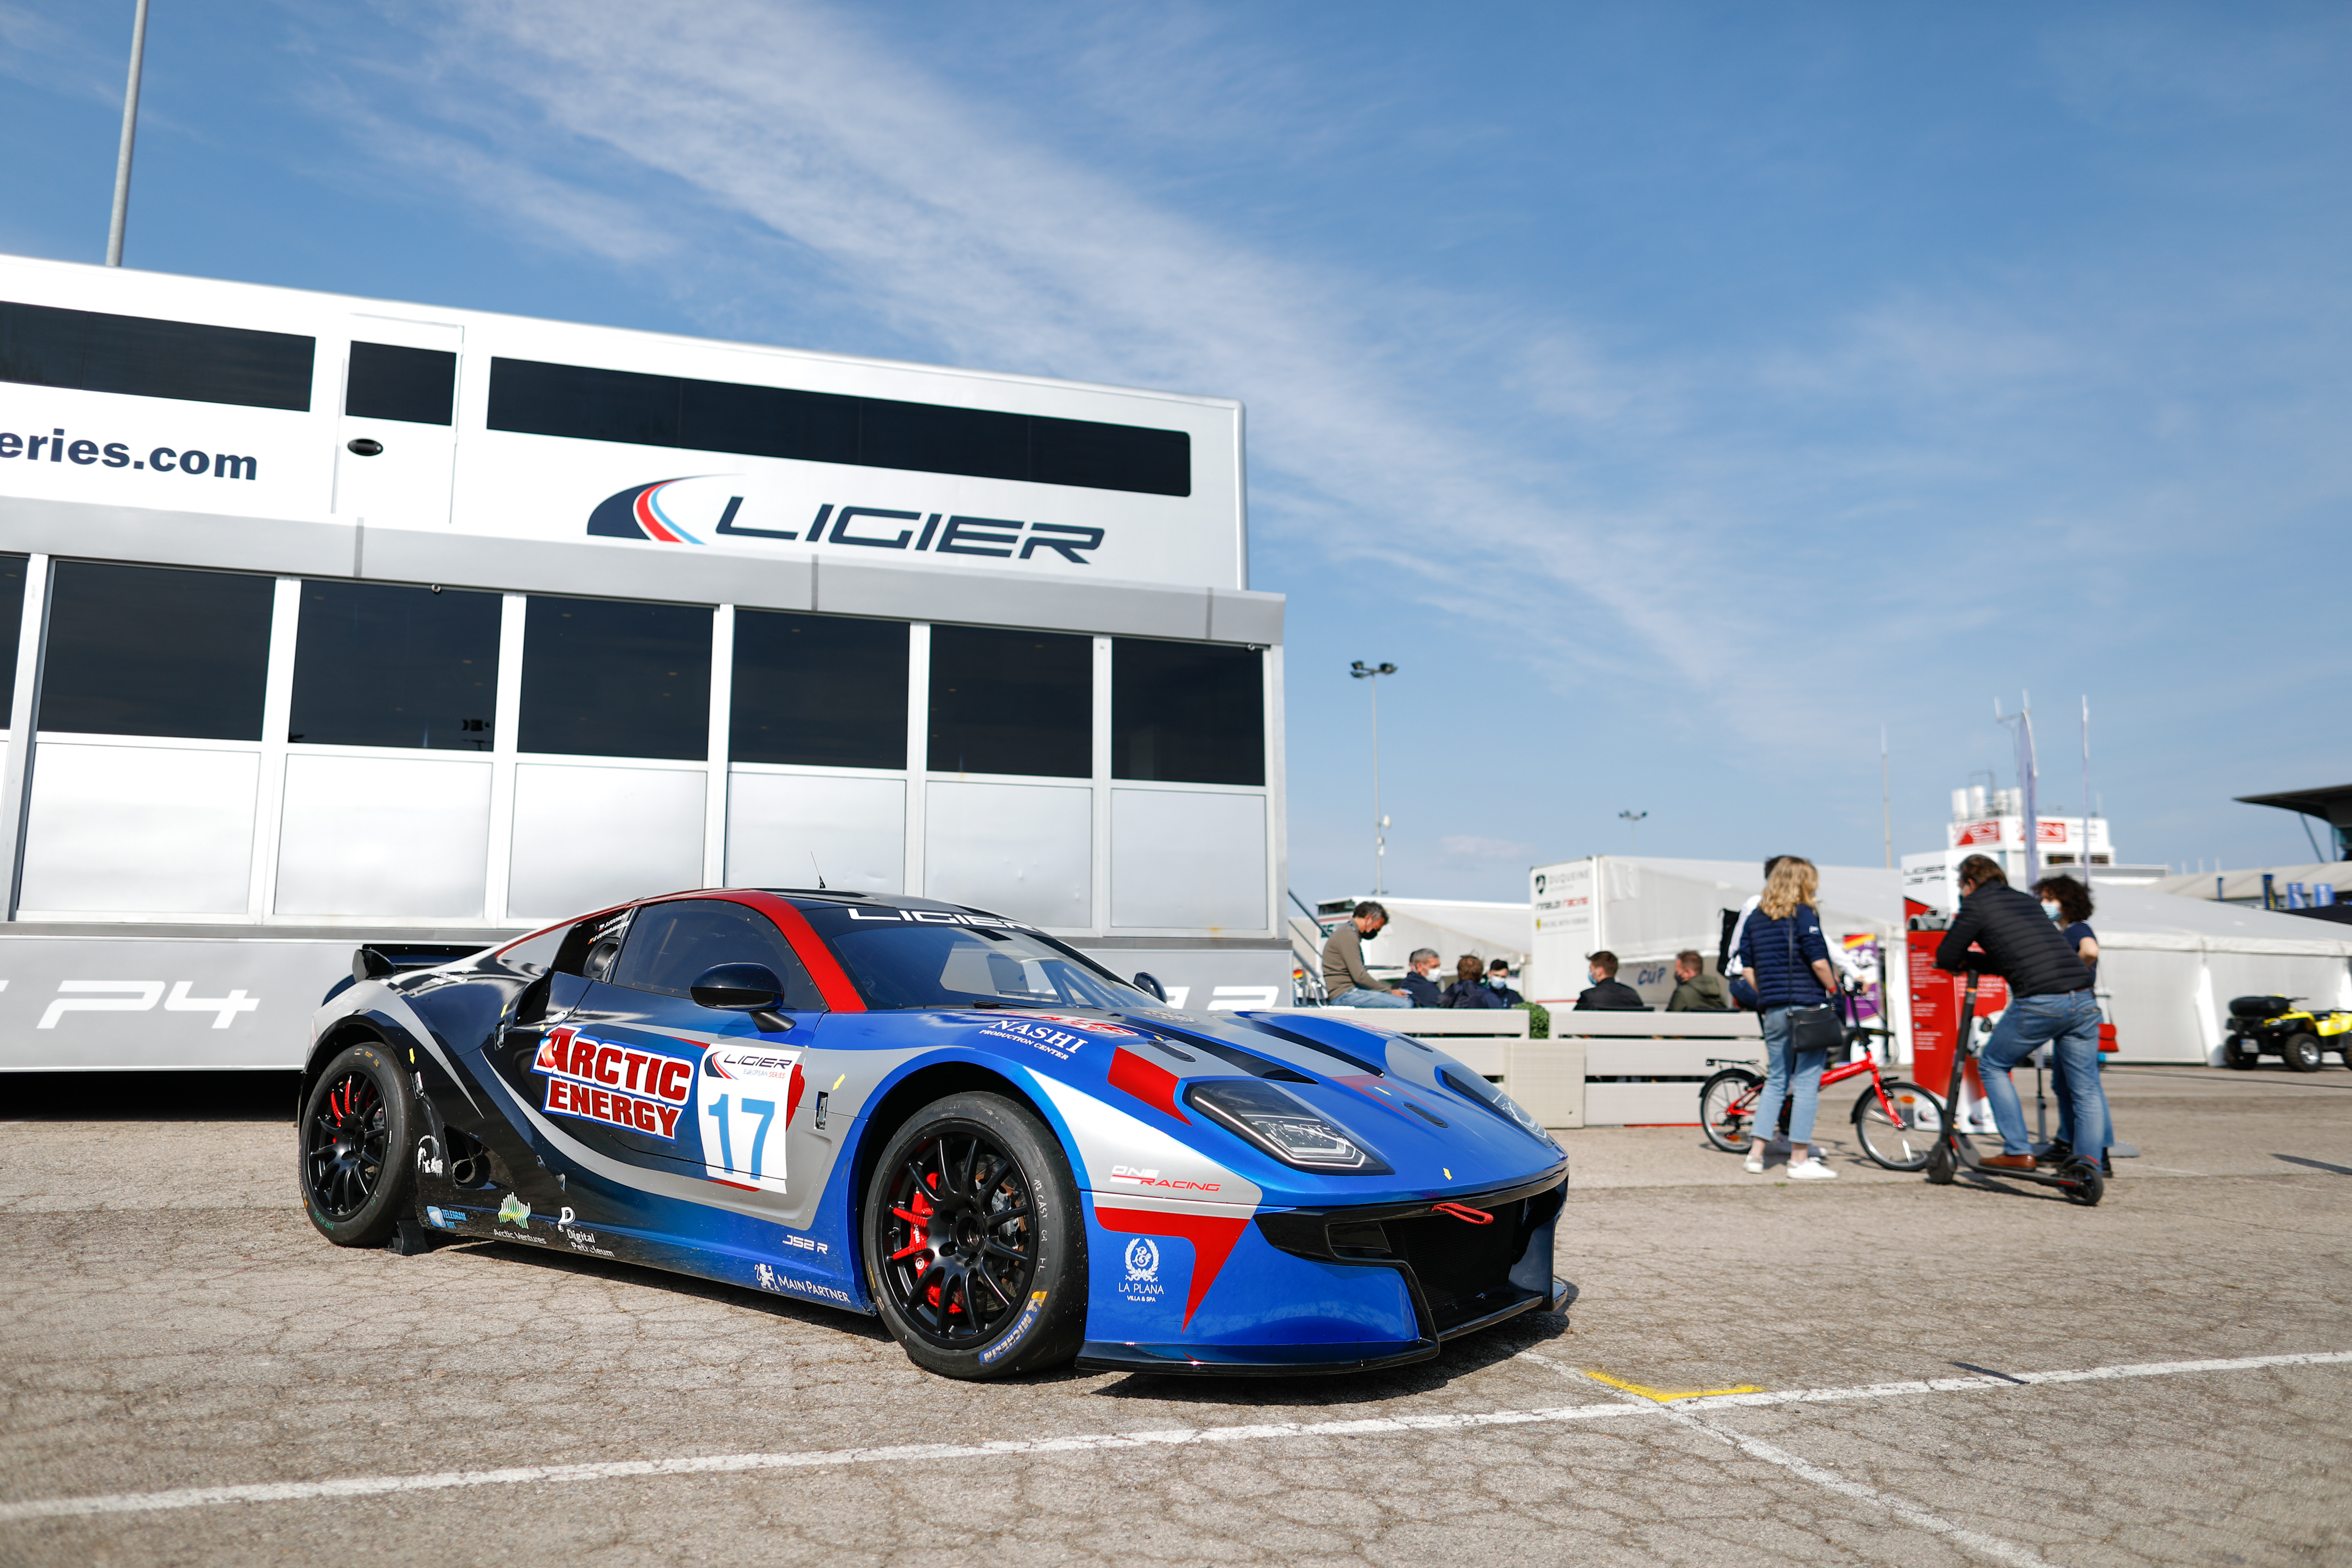 , during the Heat 1 - Barcelona of the 2021 Ligier European Series, from April 15 to 17, 2021 on the Circuit de Barcelona-Catalunya, in Montmelo, near Barcelona, Spain - Photo Frédéric Le Floc'h / DPPI